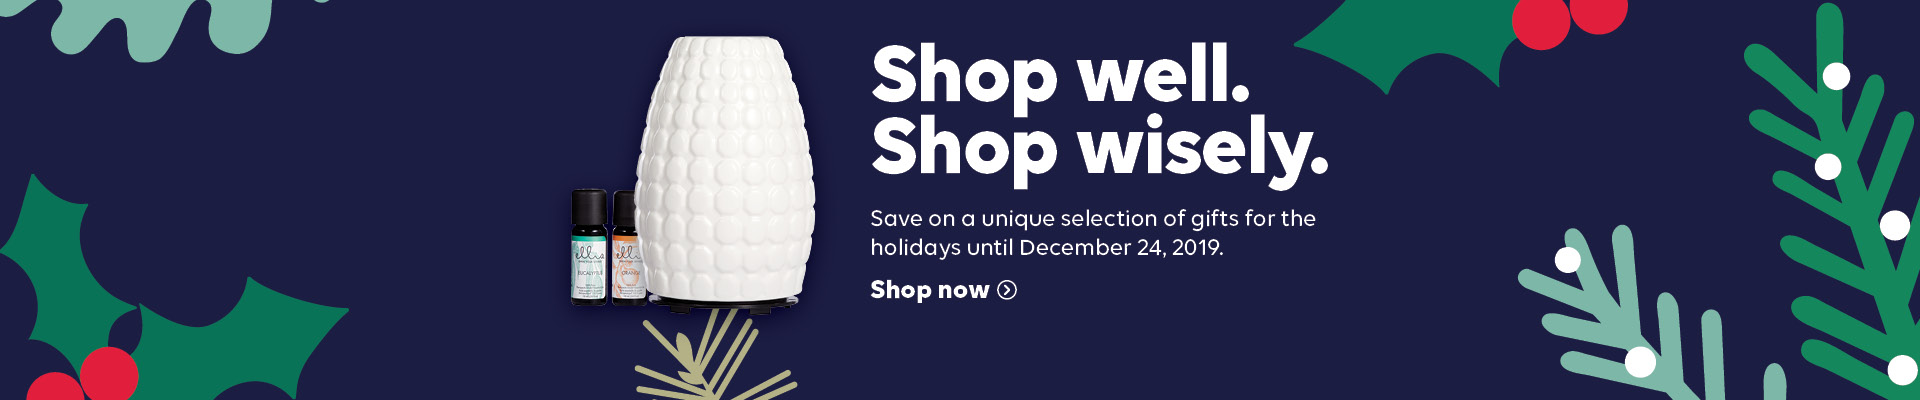 Shop well. Shop wisely. Save on a unique selection of gifts for the holidays until December 24, 2019. Shop now.